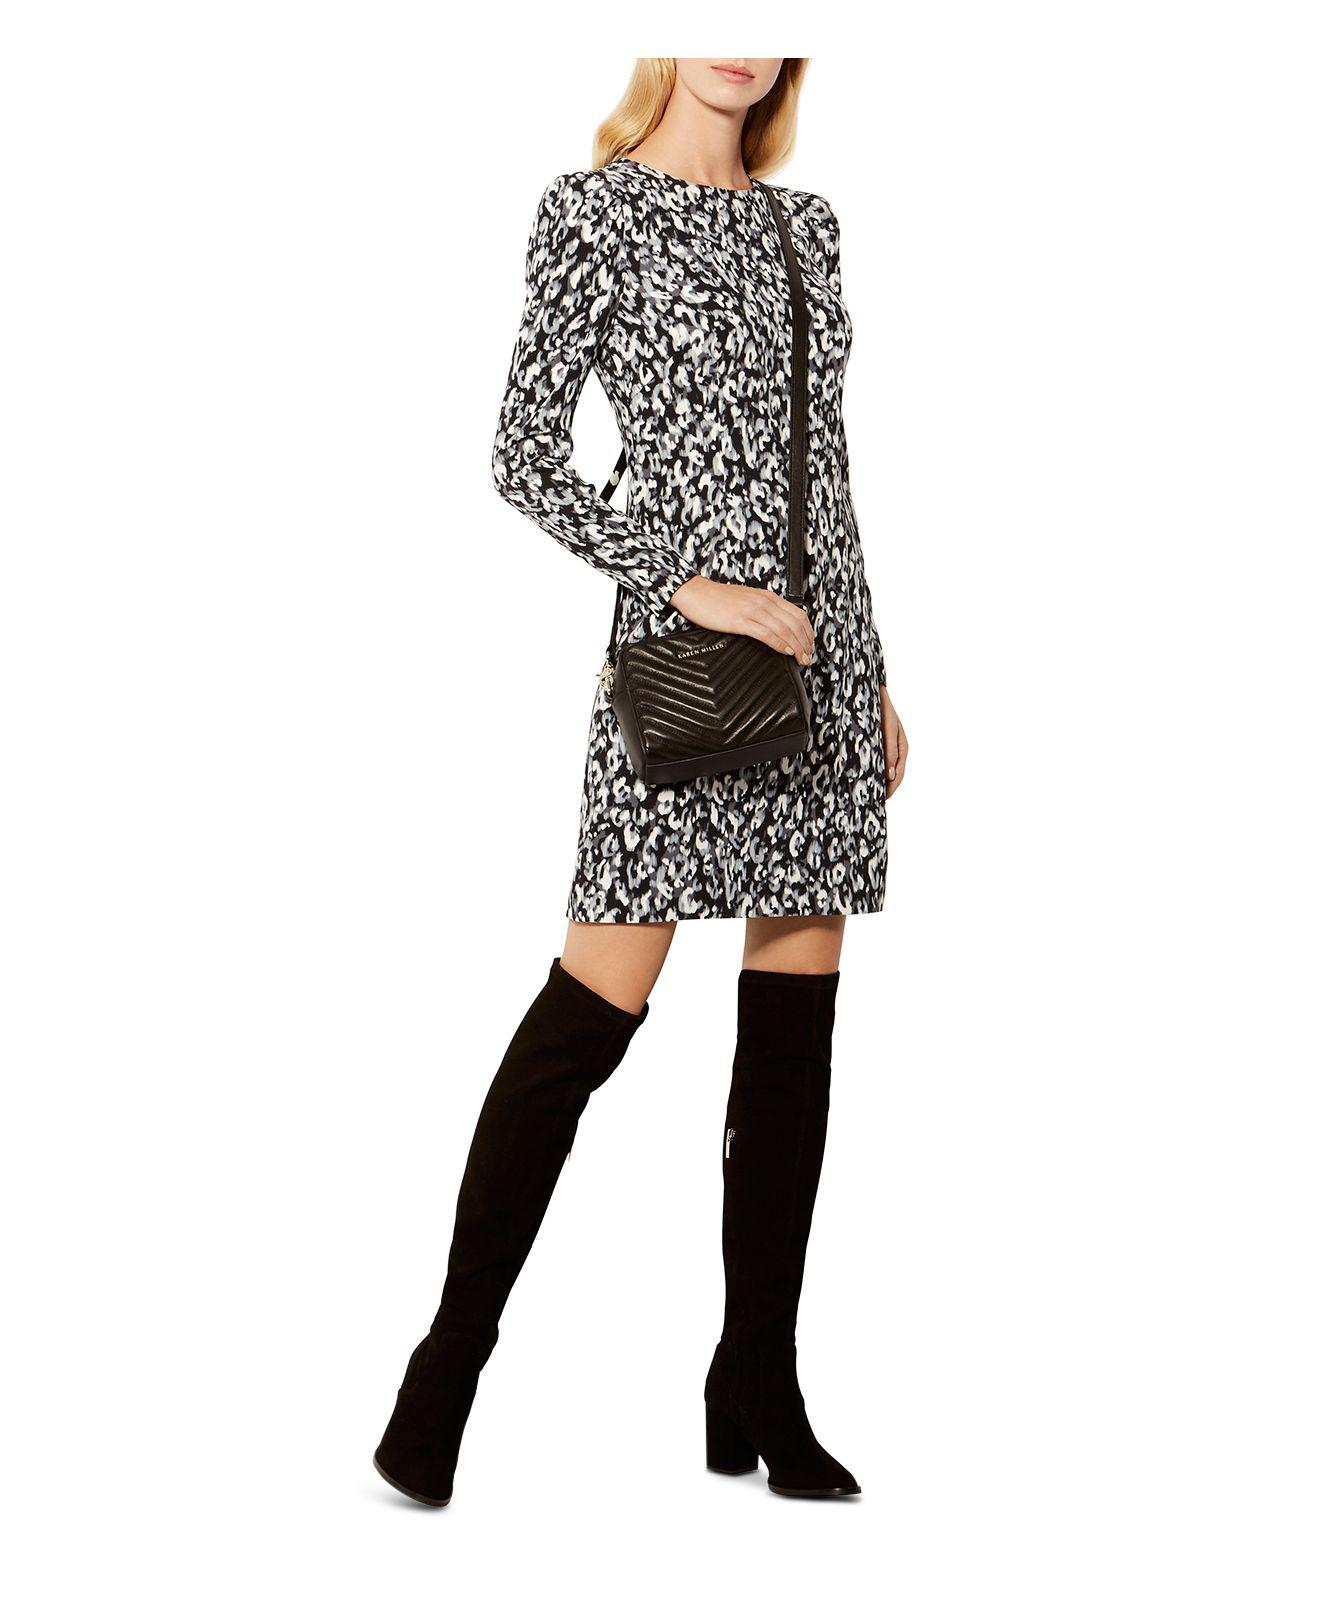 407baca6d180 Gallery. Previously sold at: Bloomingdale's · Women's Pencil Dresses